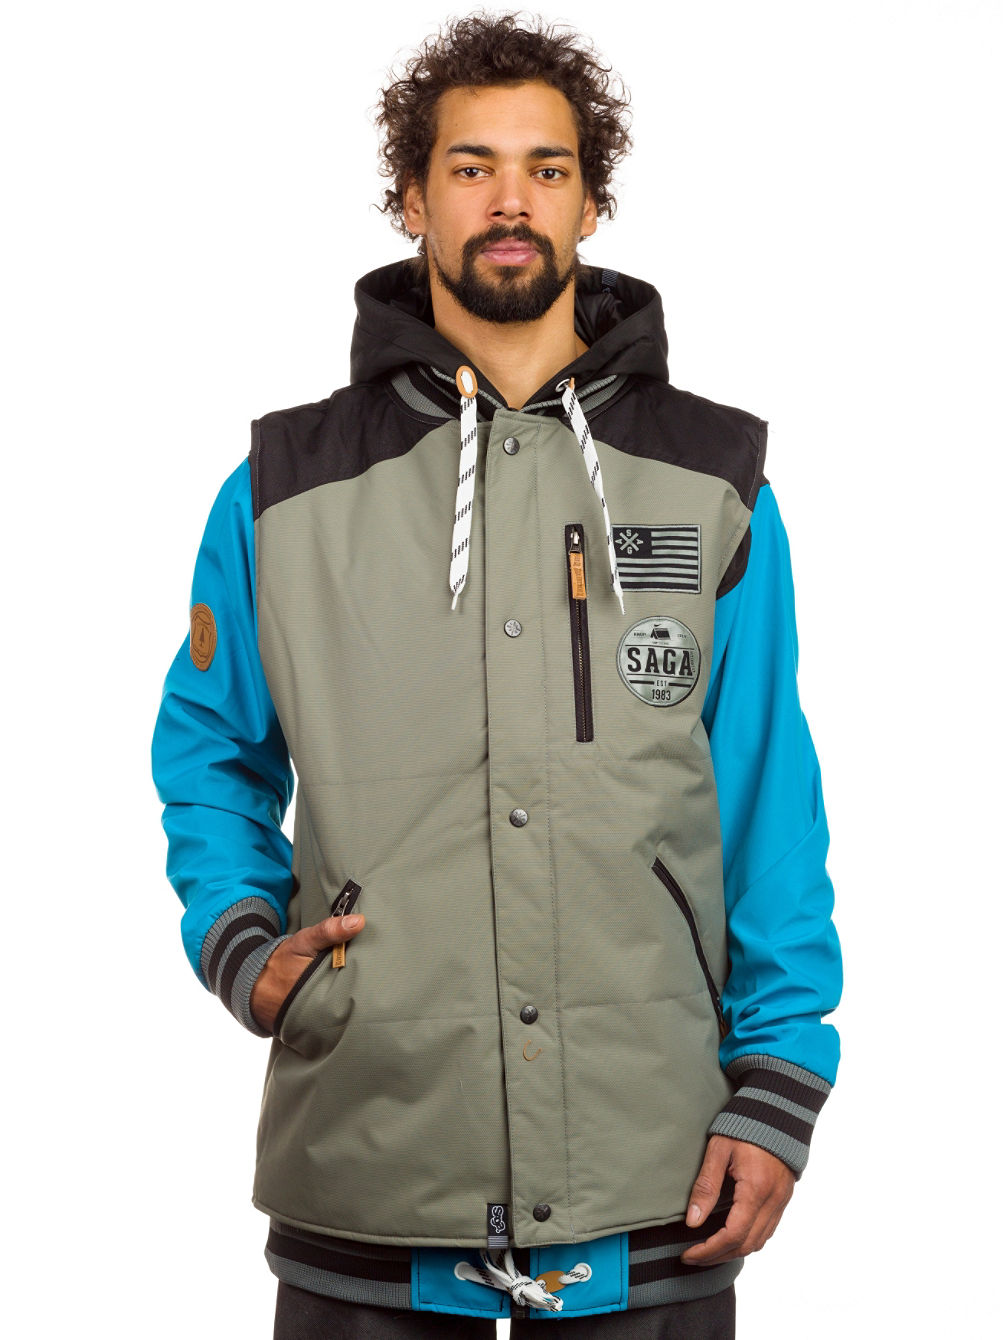 Buy Saga Outerwear Puff Vest u0026 Poly Combo Jacket online at blue-tomato.com